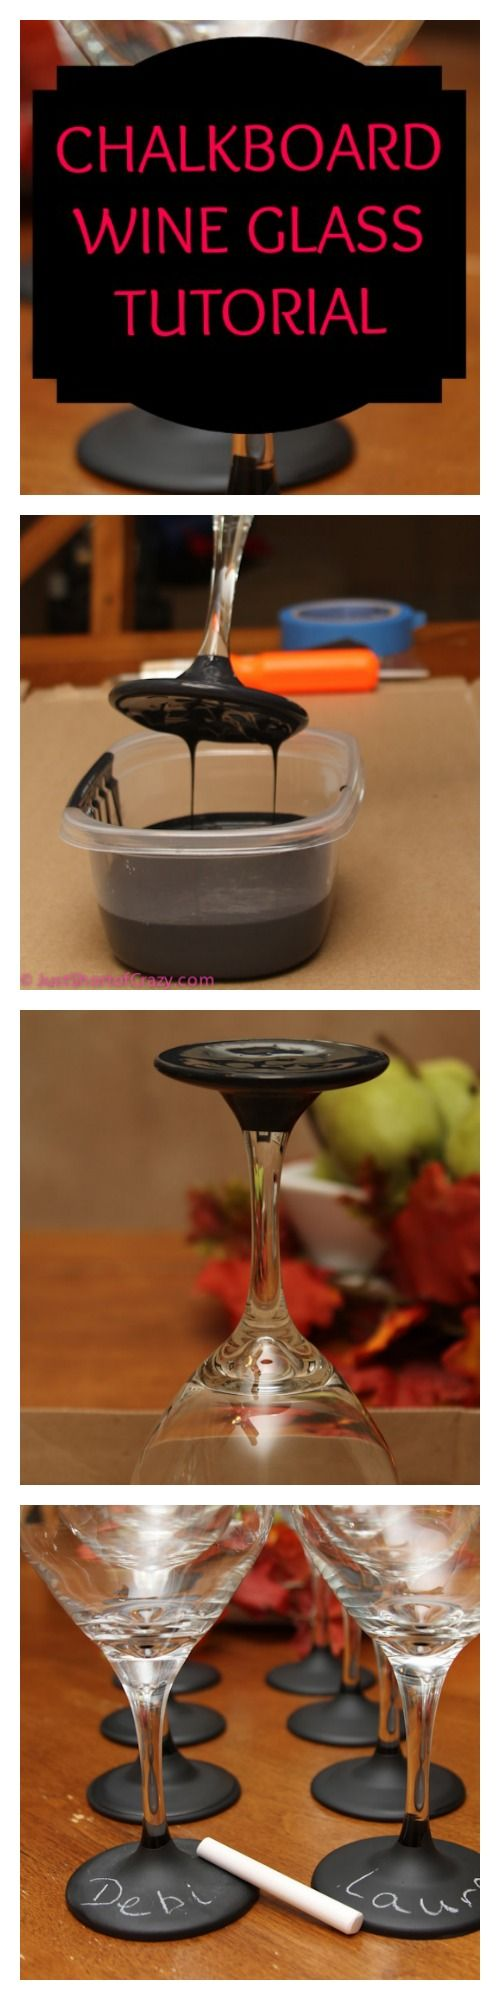 chalkboard wine glass tutorial... you'll love these, they are great to have at parties!!